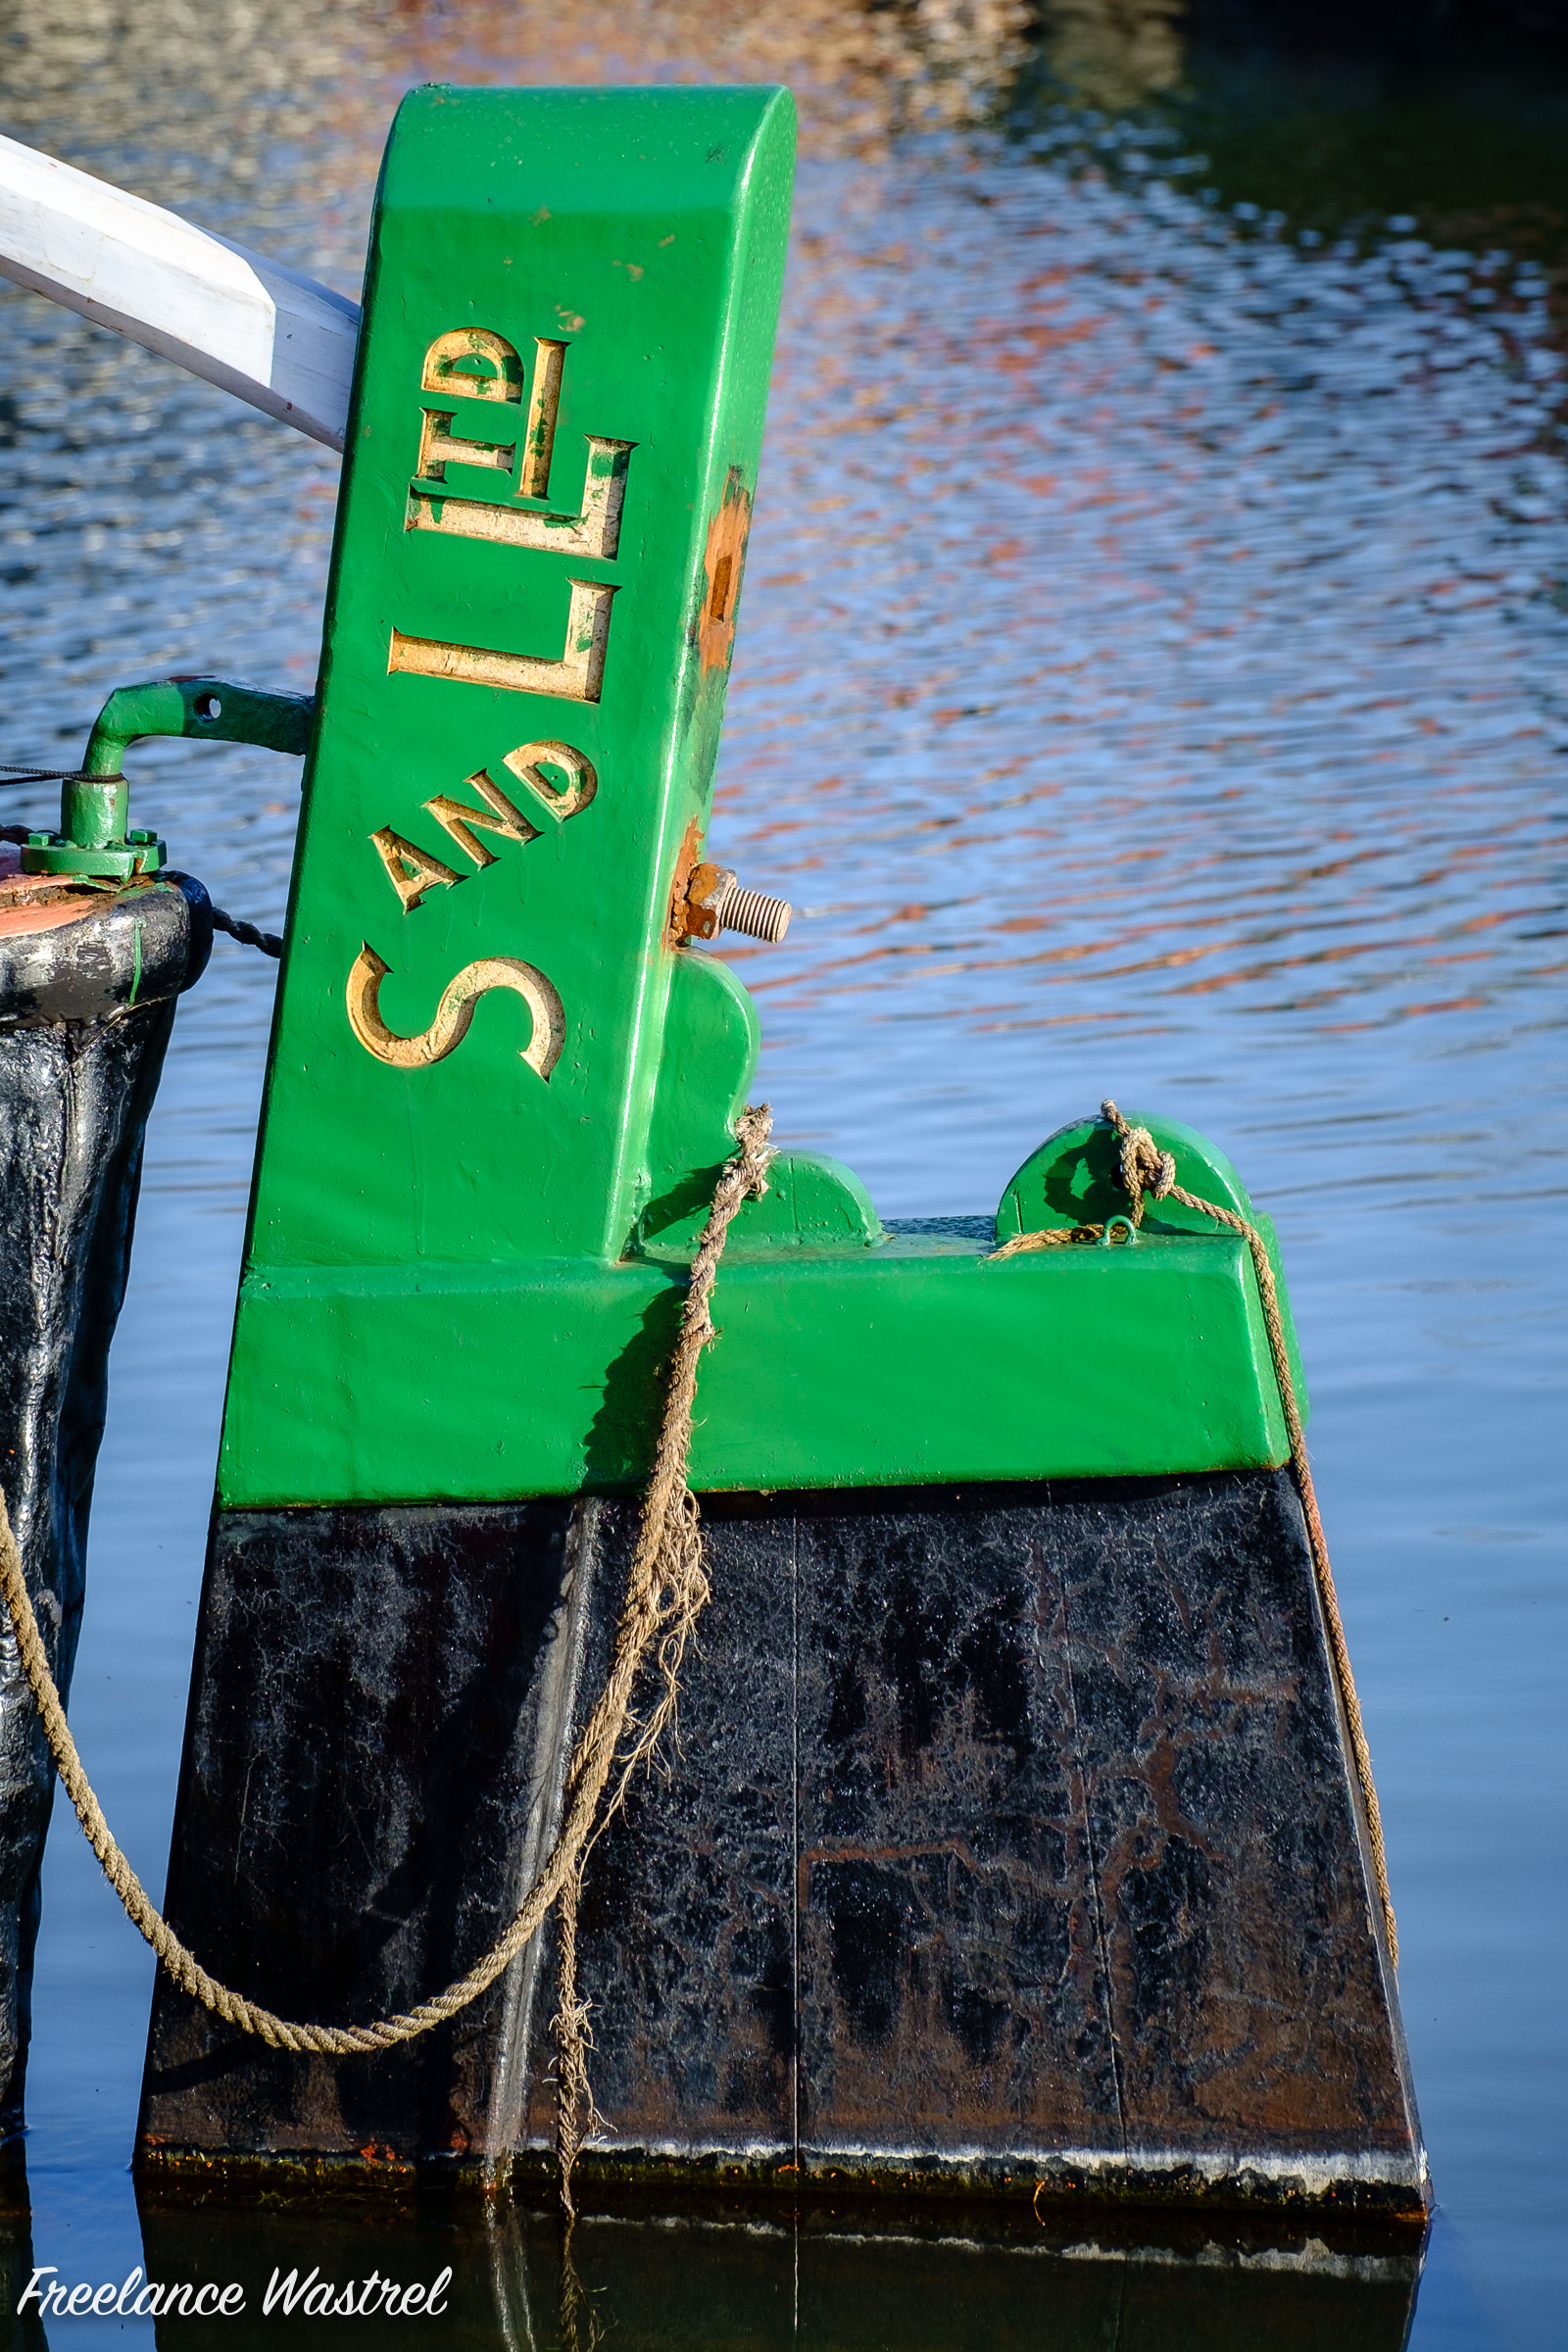 S and L Ltd, Langley Mill Basin